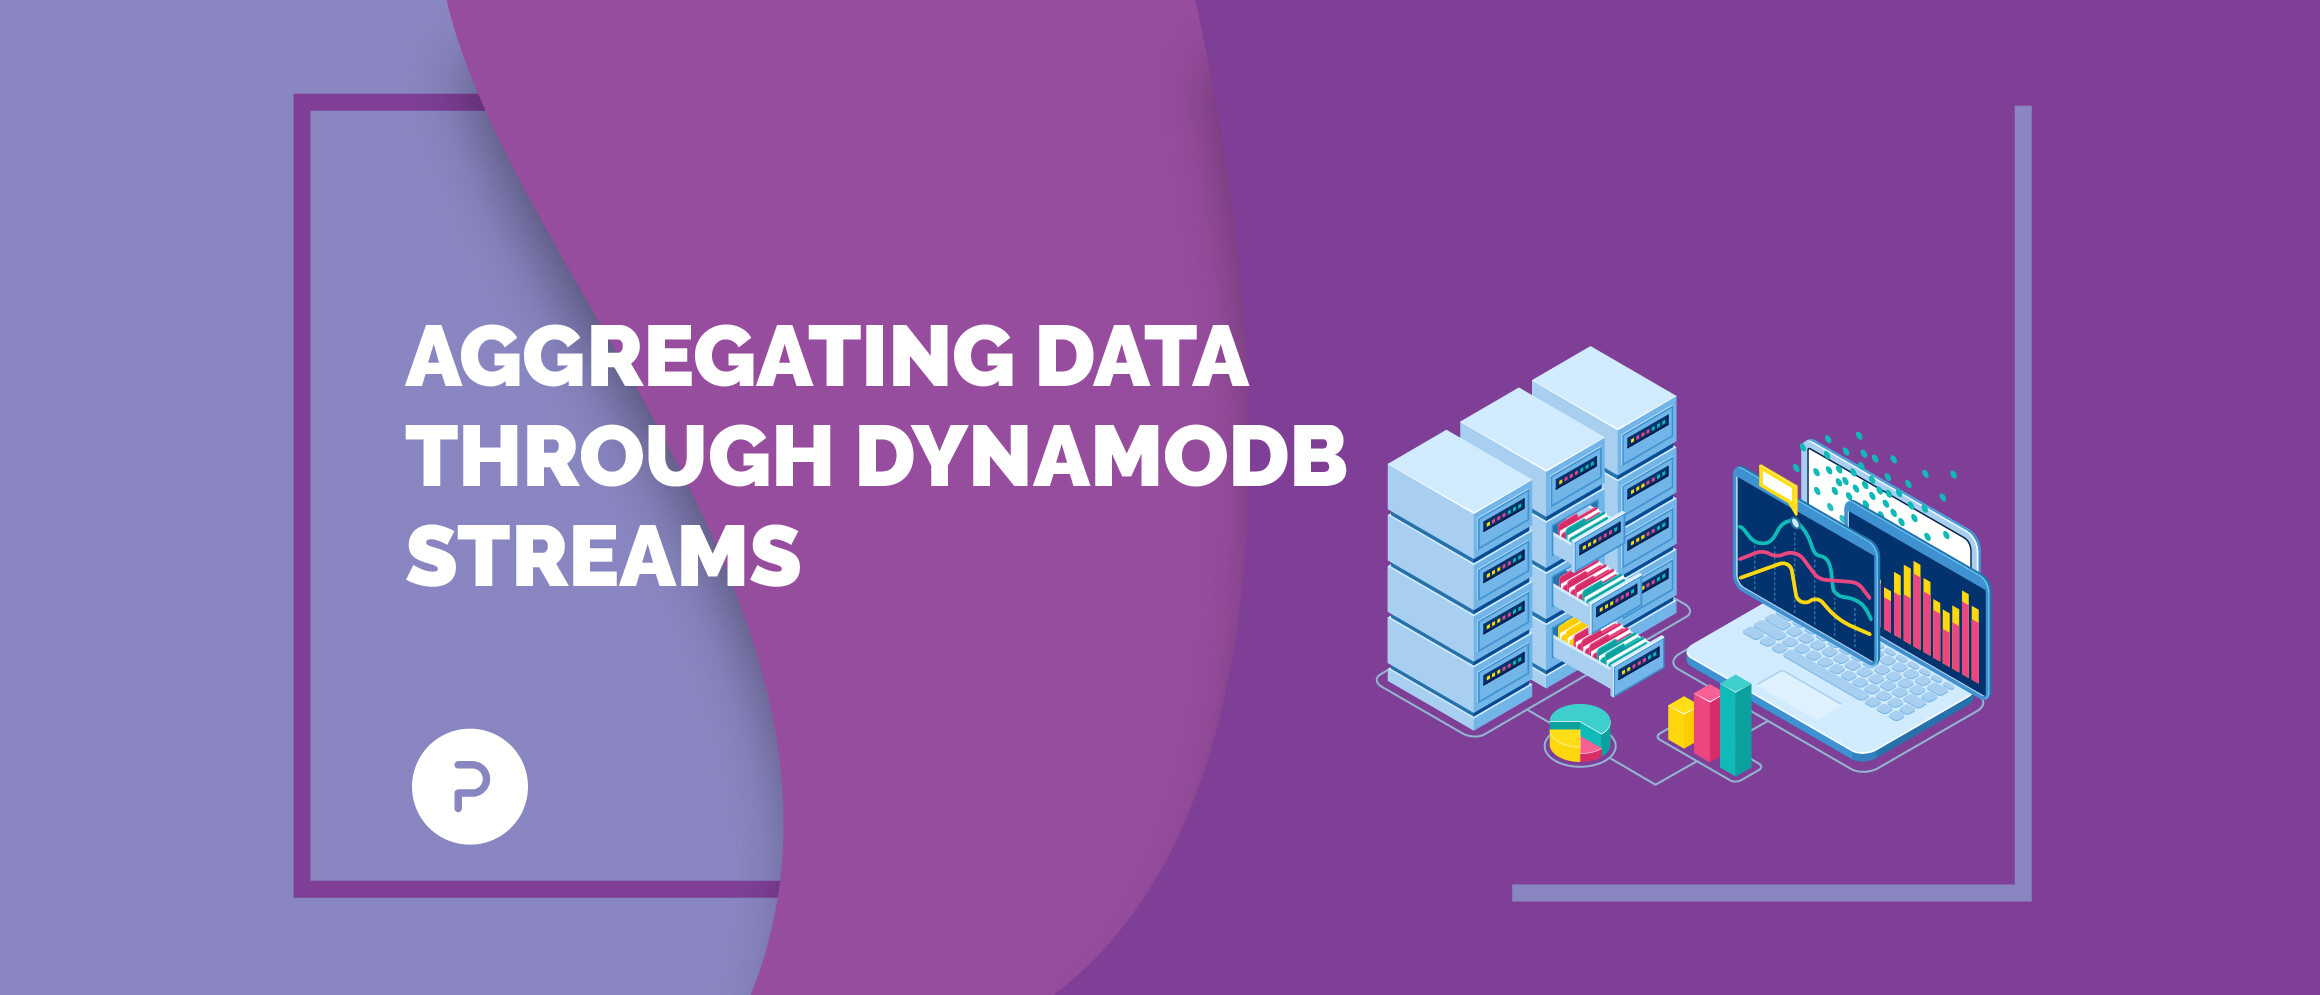 Aggregating Data through DynamoDB Streams